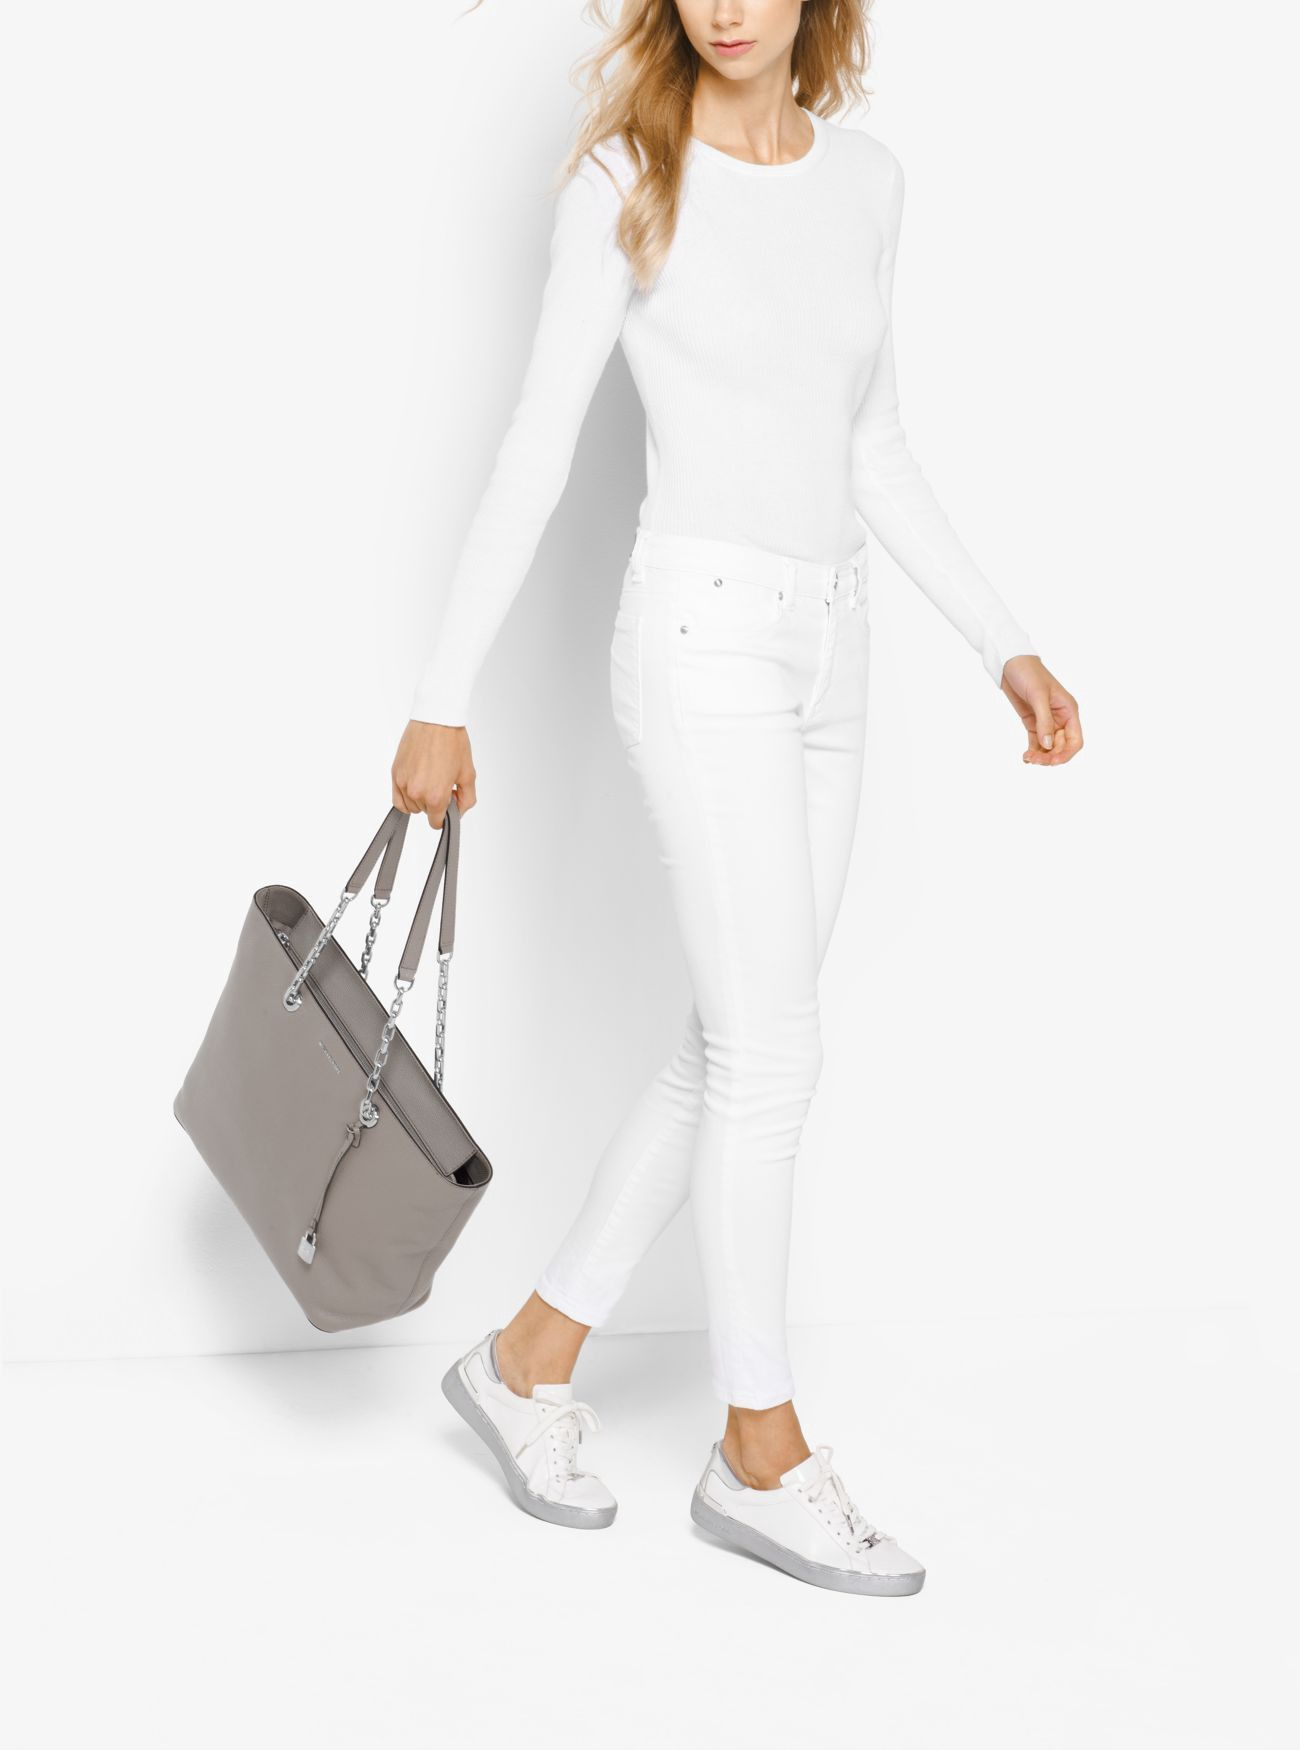 99305fb50e11 MICHAEL KORS Mercer Chain-Link Leather Tote. #michaelkors #bags #leather  #hand bags #polyester #tote #lining #